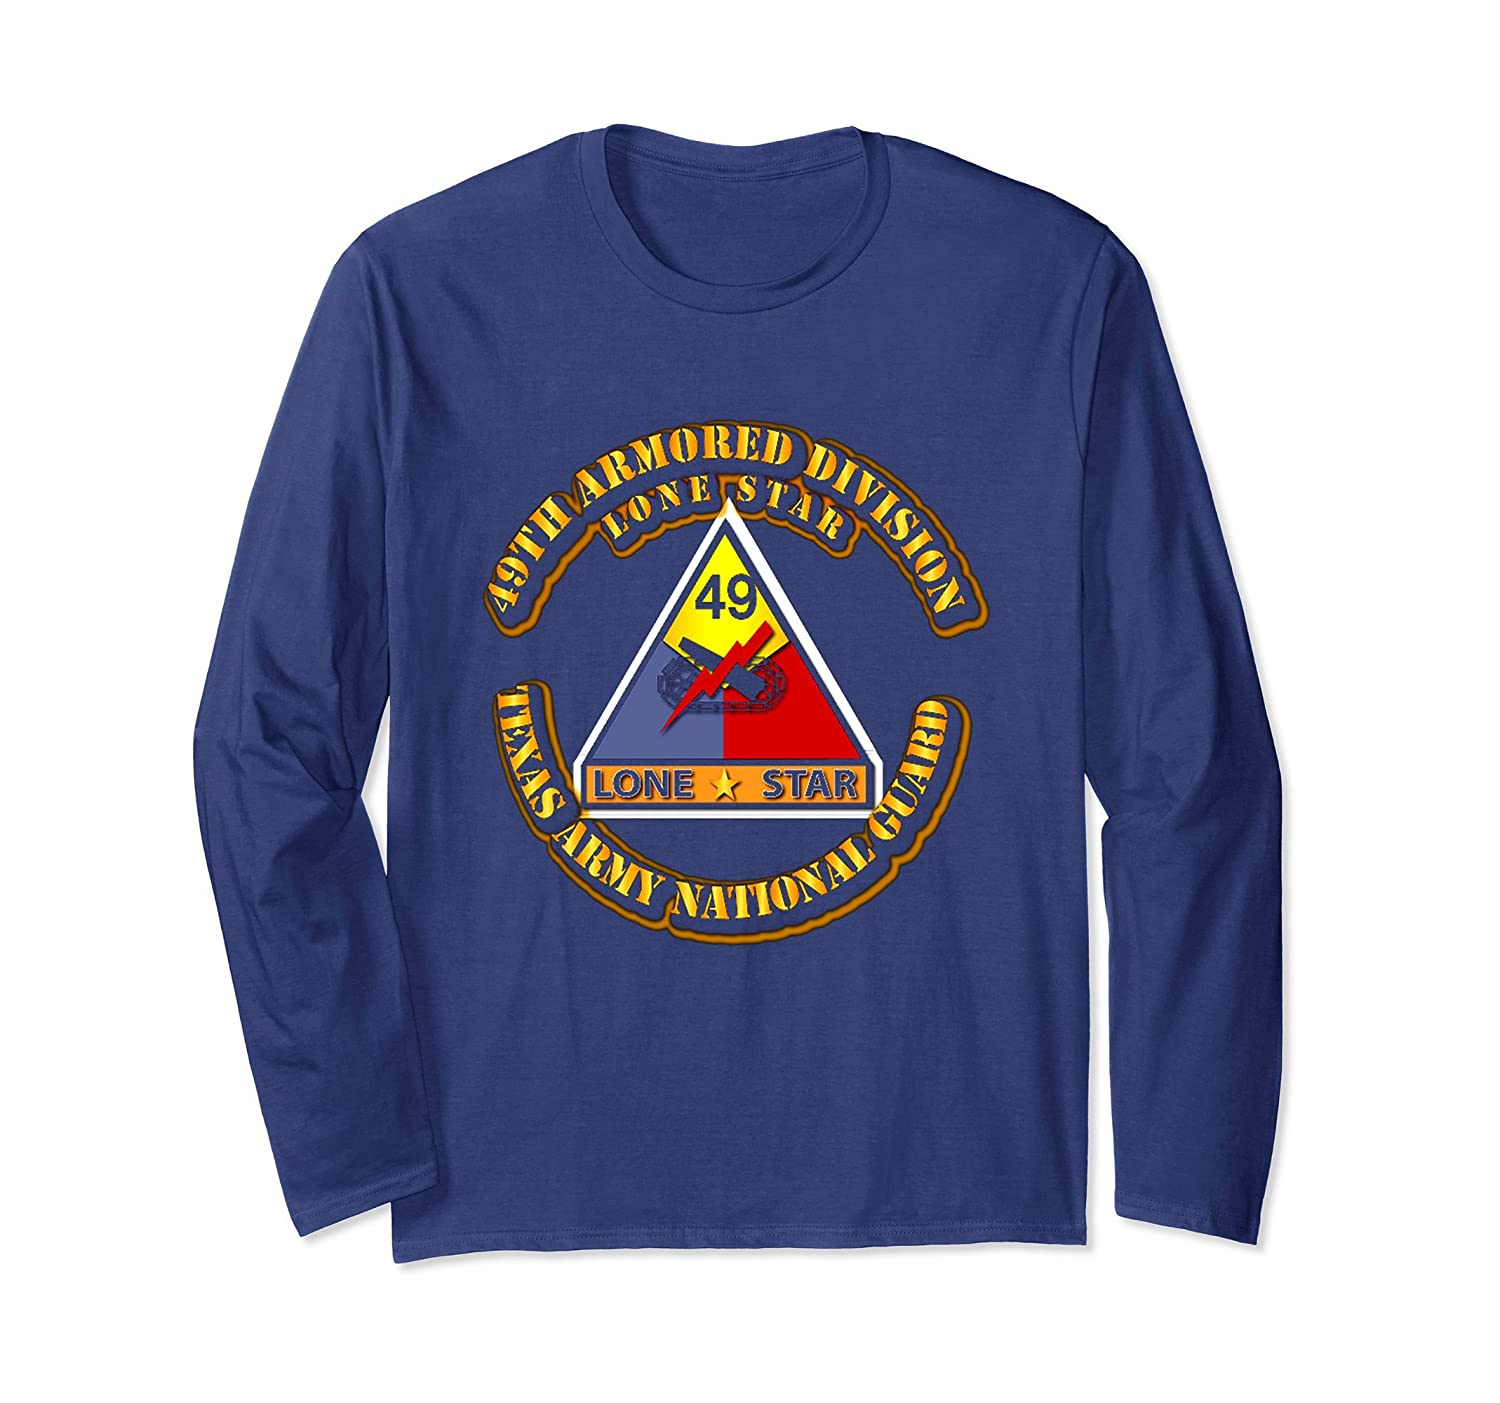 49th Armored Division ,Texas Army National Guard Tshirt-mt